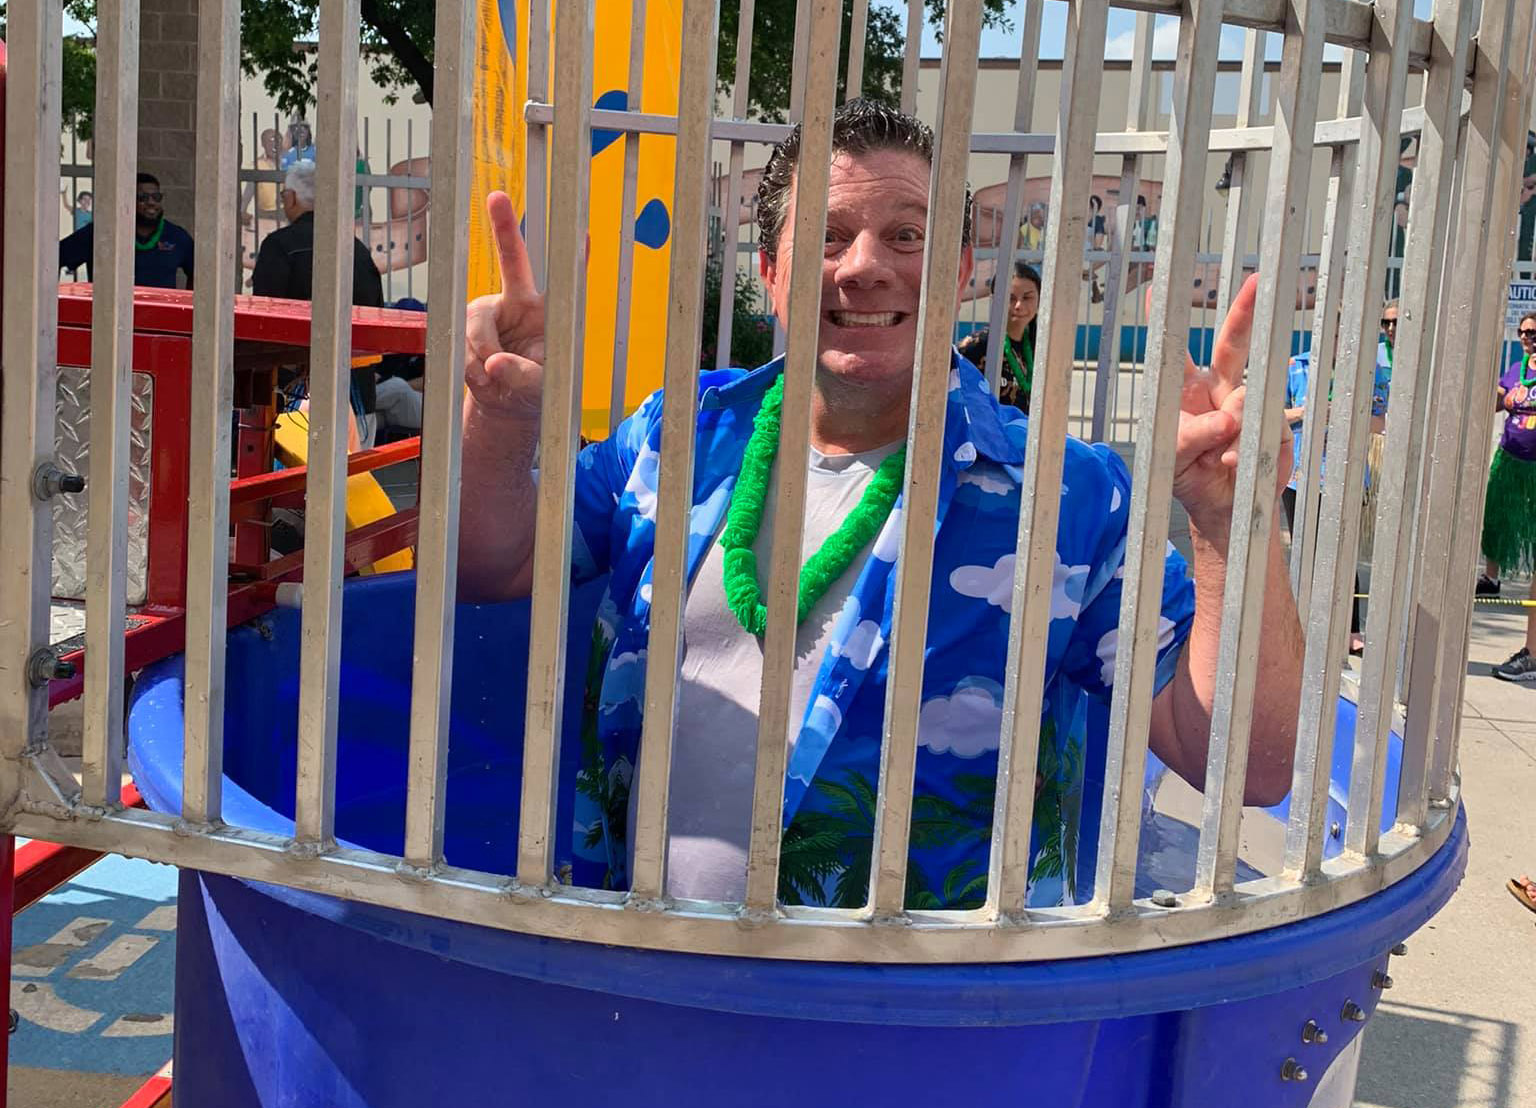 Bob Duff, AATC Community Service Committee Chair, stands ready at the Dunking Tank